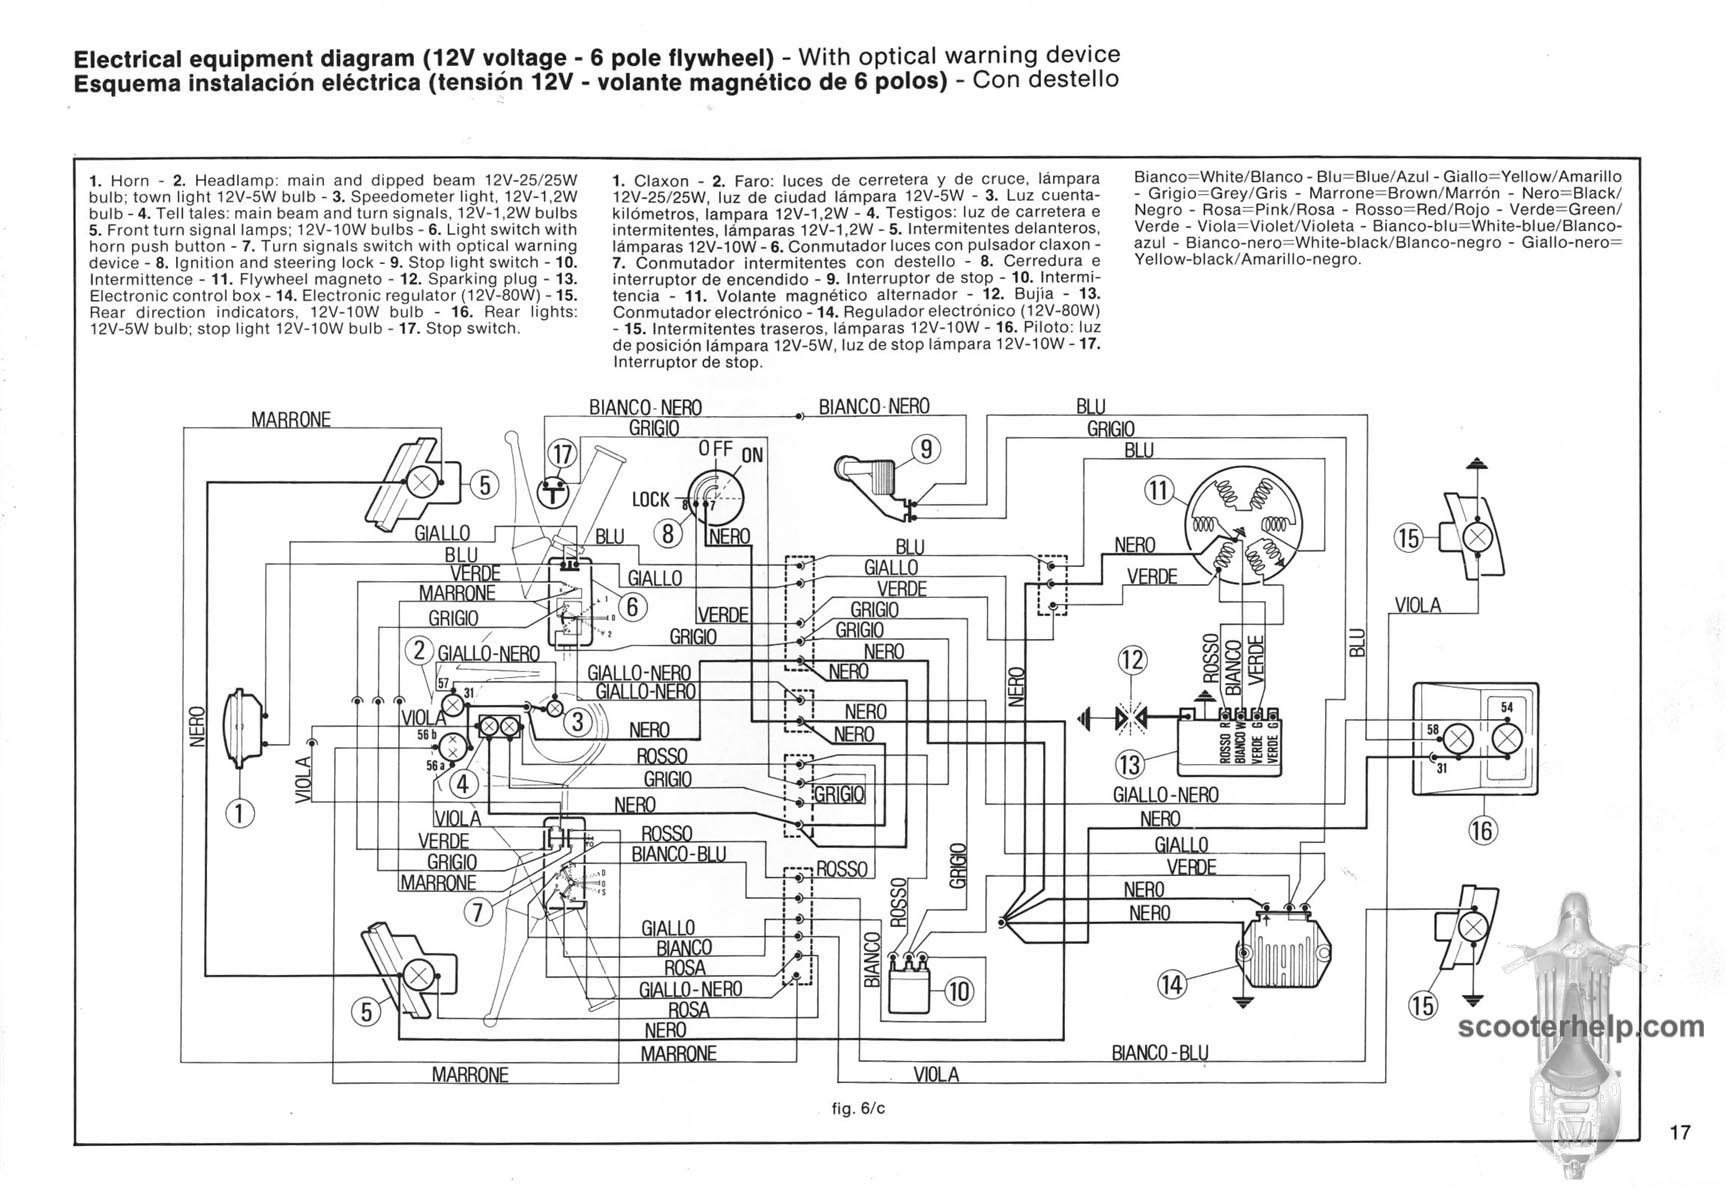 17 pk factory repair manual vespa p125x wiring diagram at eliteediting.co